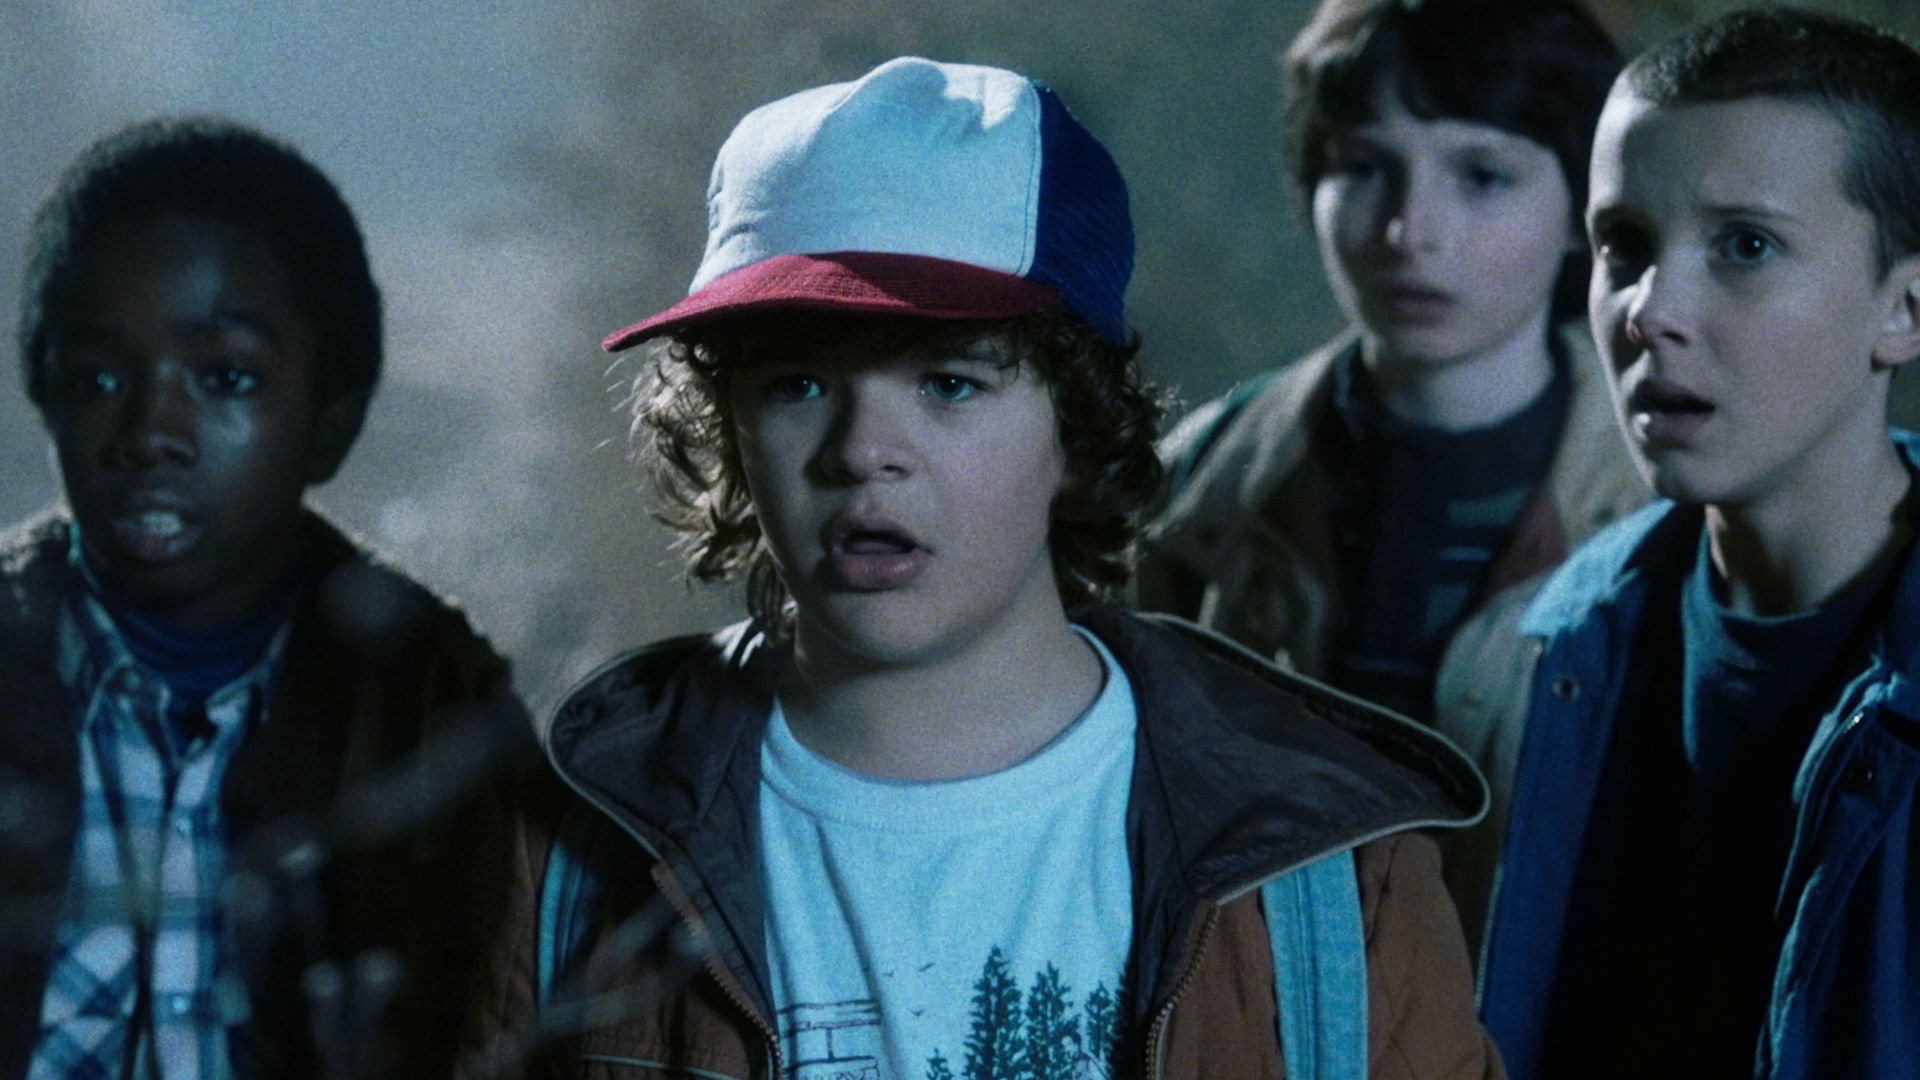 Stranger Things season 2 will bring back its young stars